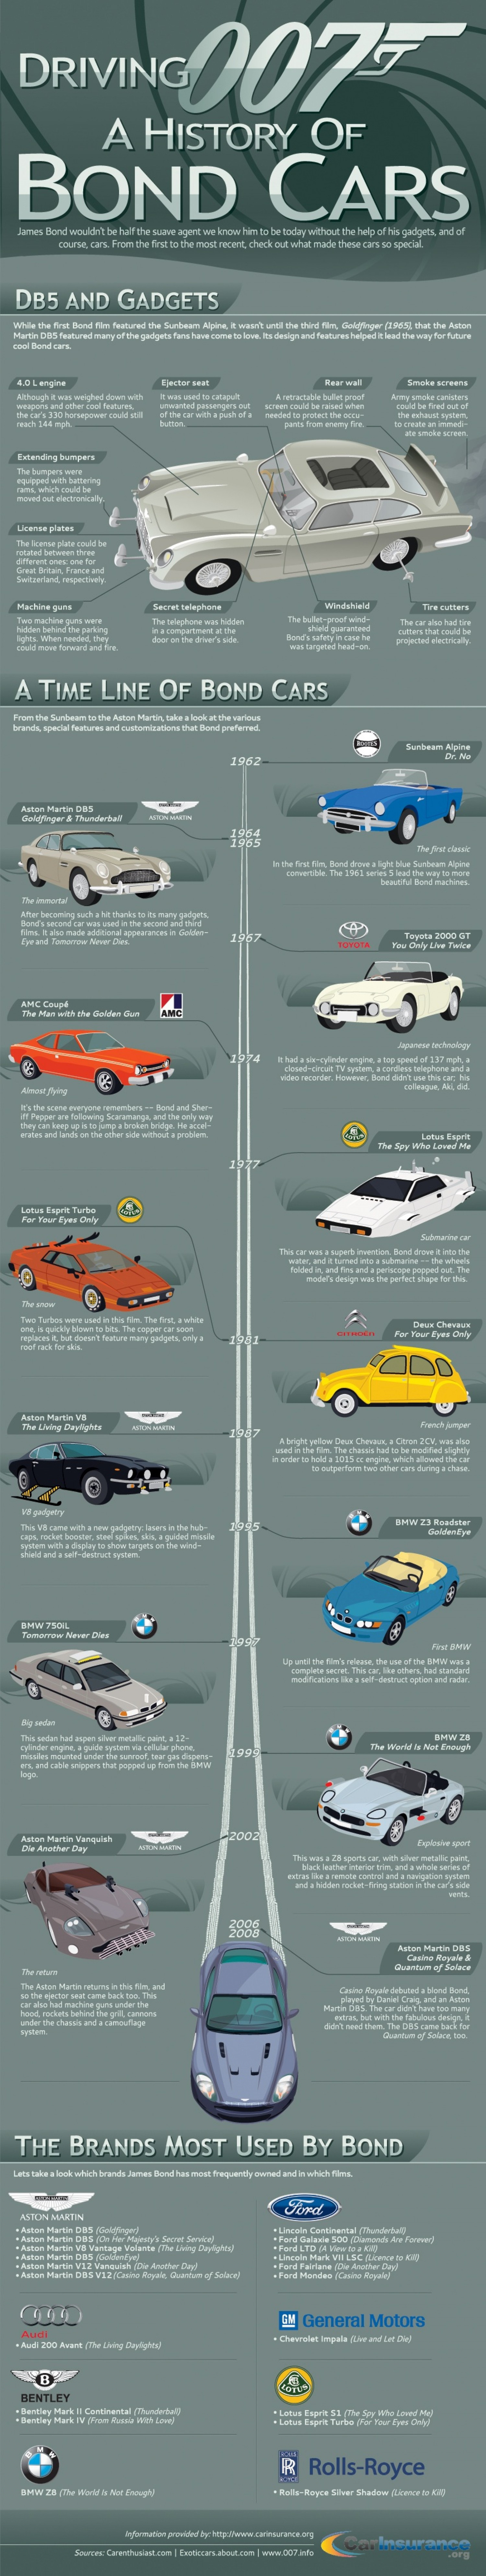 6. A history of James Bond cars